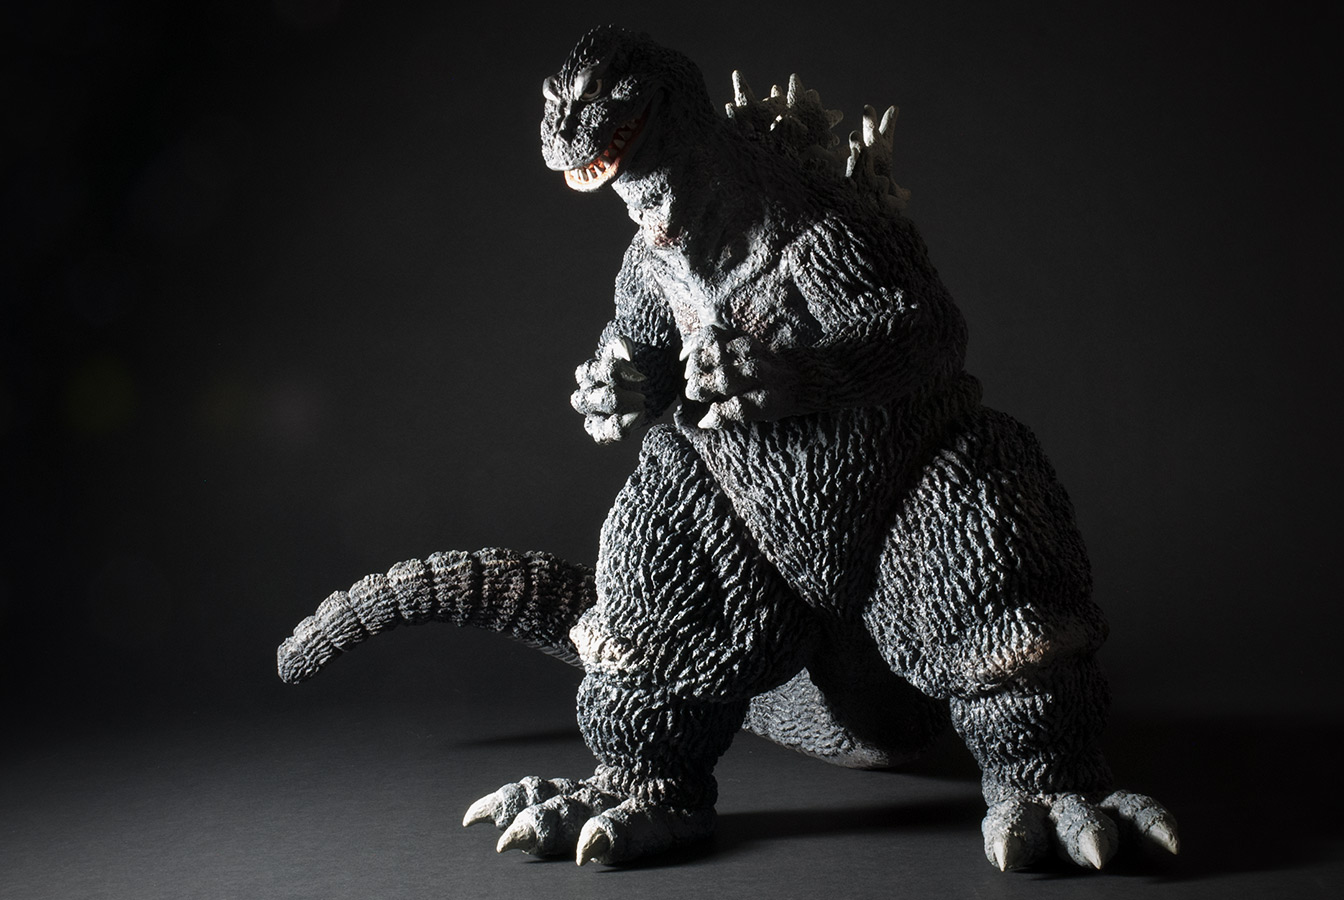 The newly released Gigantic Series Godzilla 1962 vinyl figure by X-Plus.